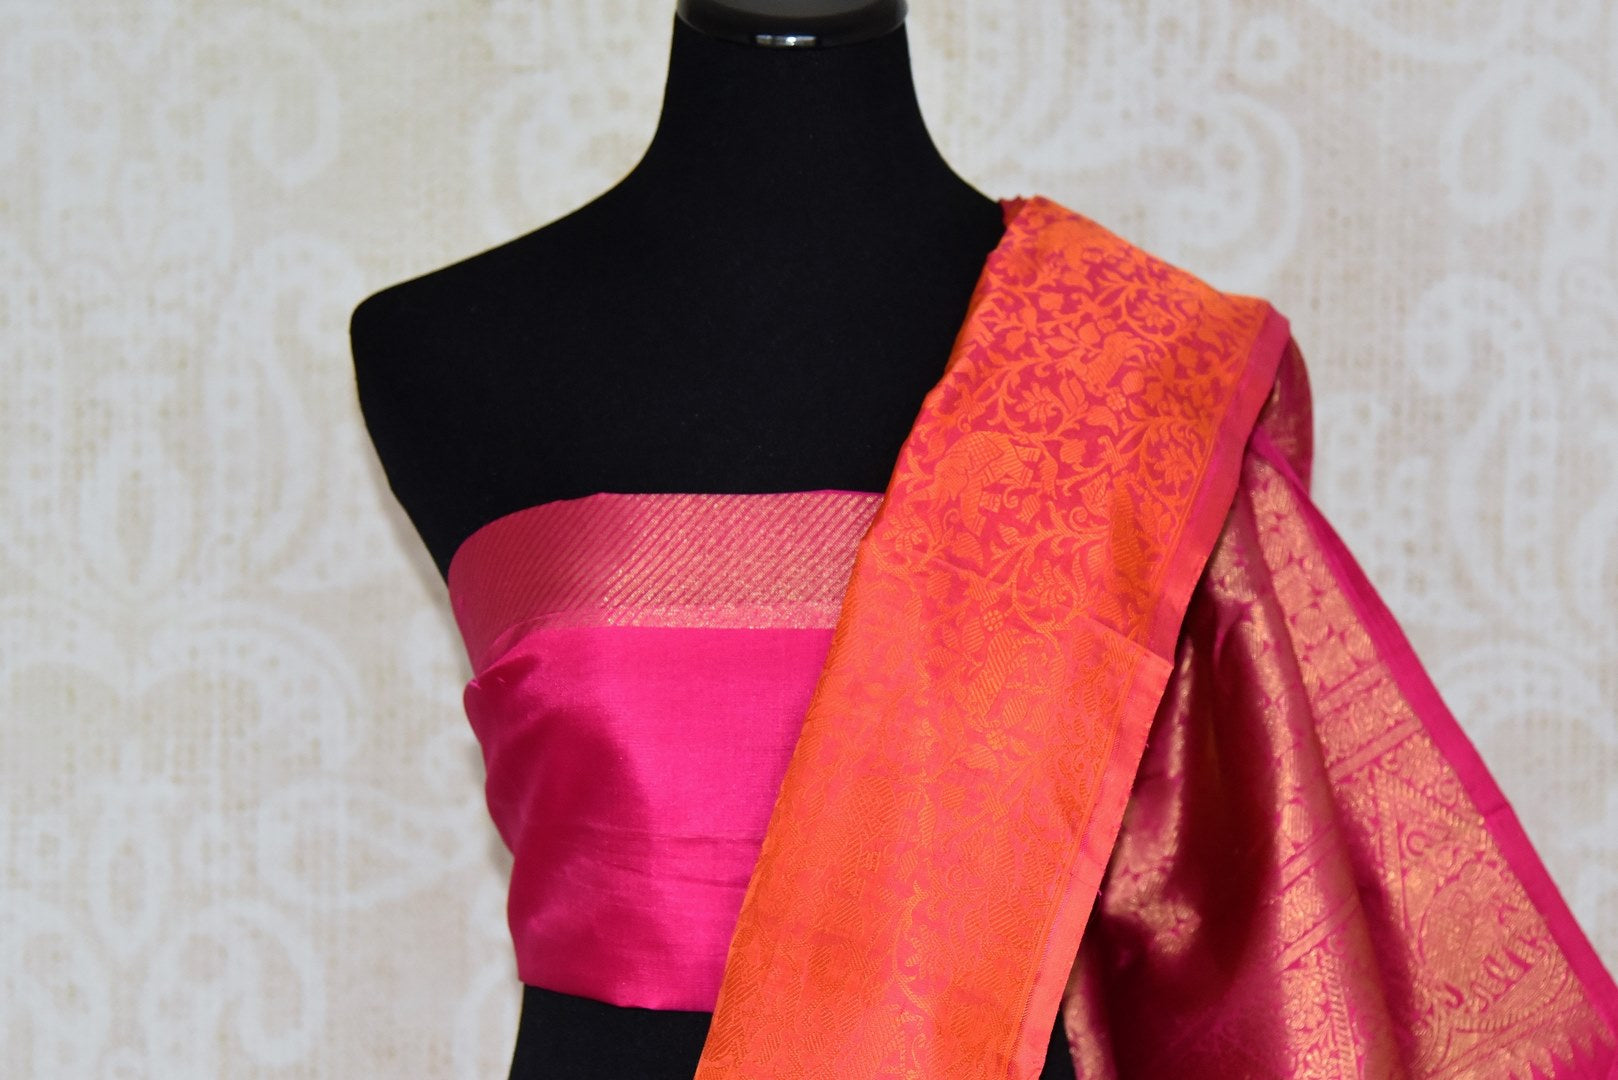 Buy orange Kanjeevaram sari online in USA with jacquard weave and pink zari pallu. Elevate your traditional style with exquisite Indian designer sarees from Pure Elegance Indian clothing store in USA. Explore a range of stunning silk sarees, embroidered sarees, wedding sarees especially from India for women in USA.-blouse pallu